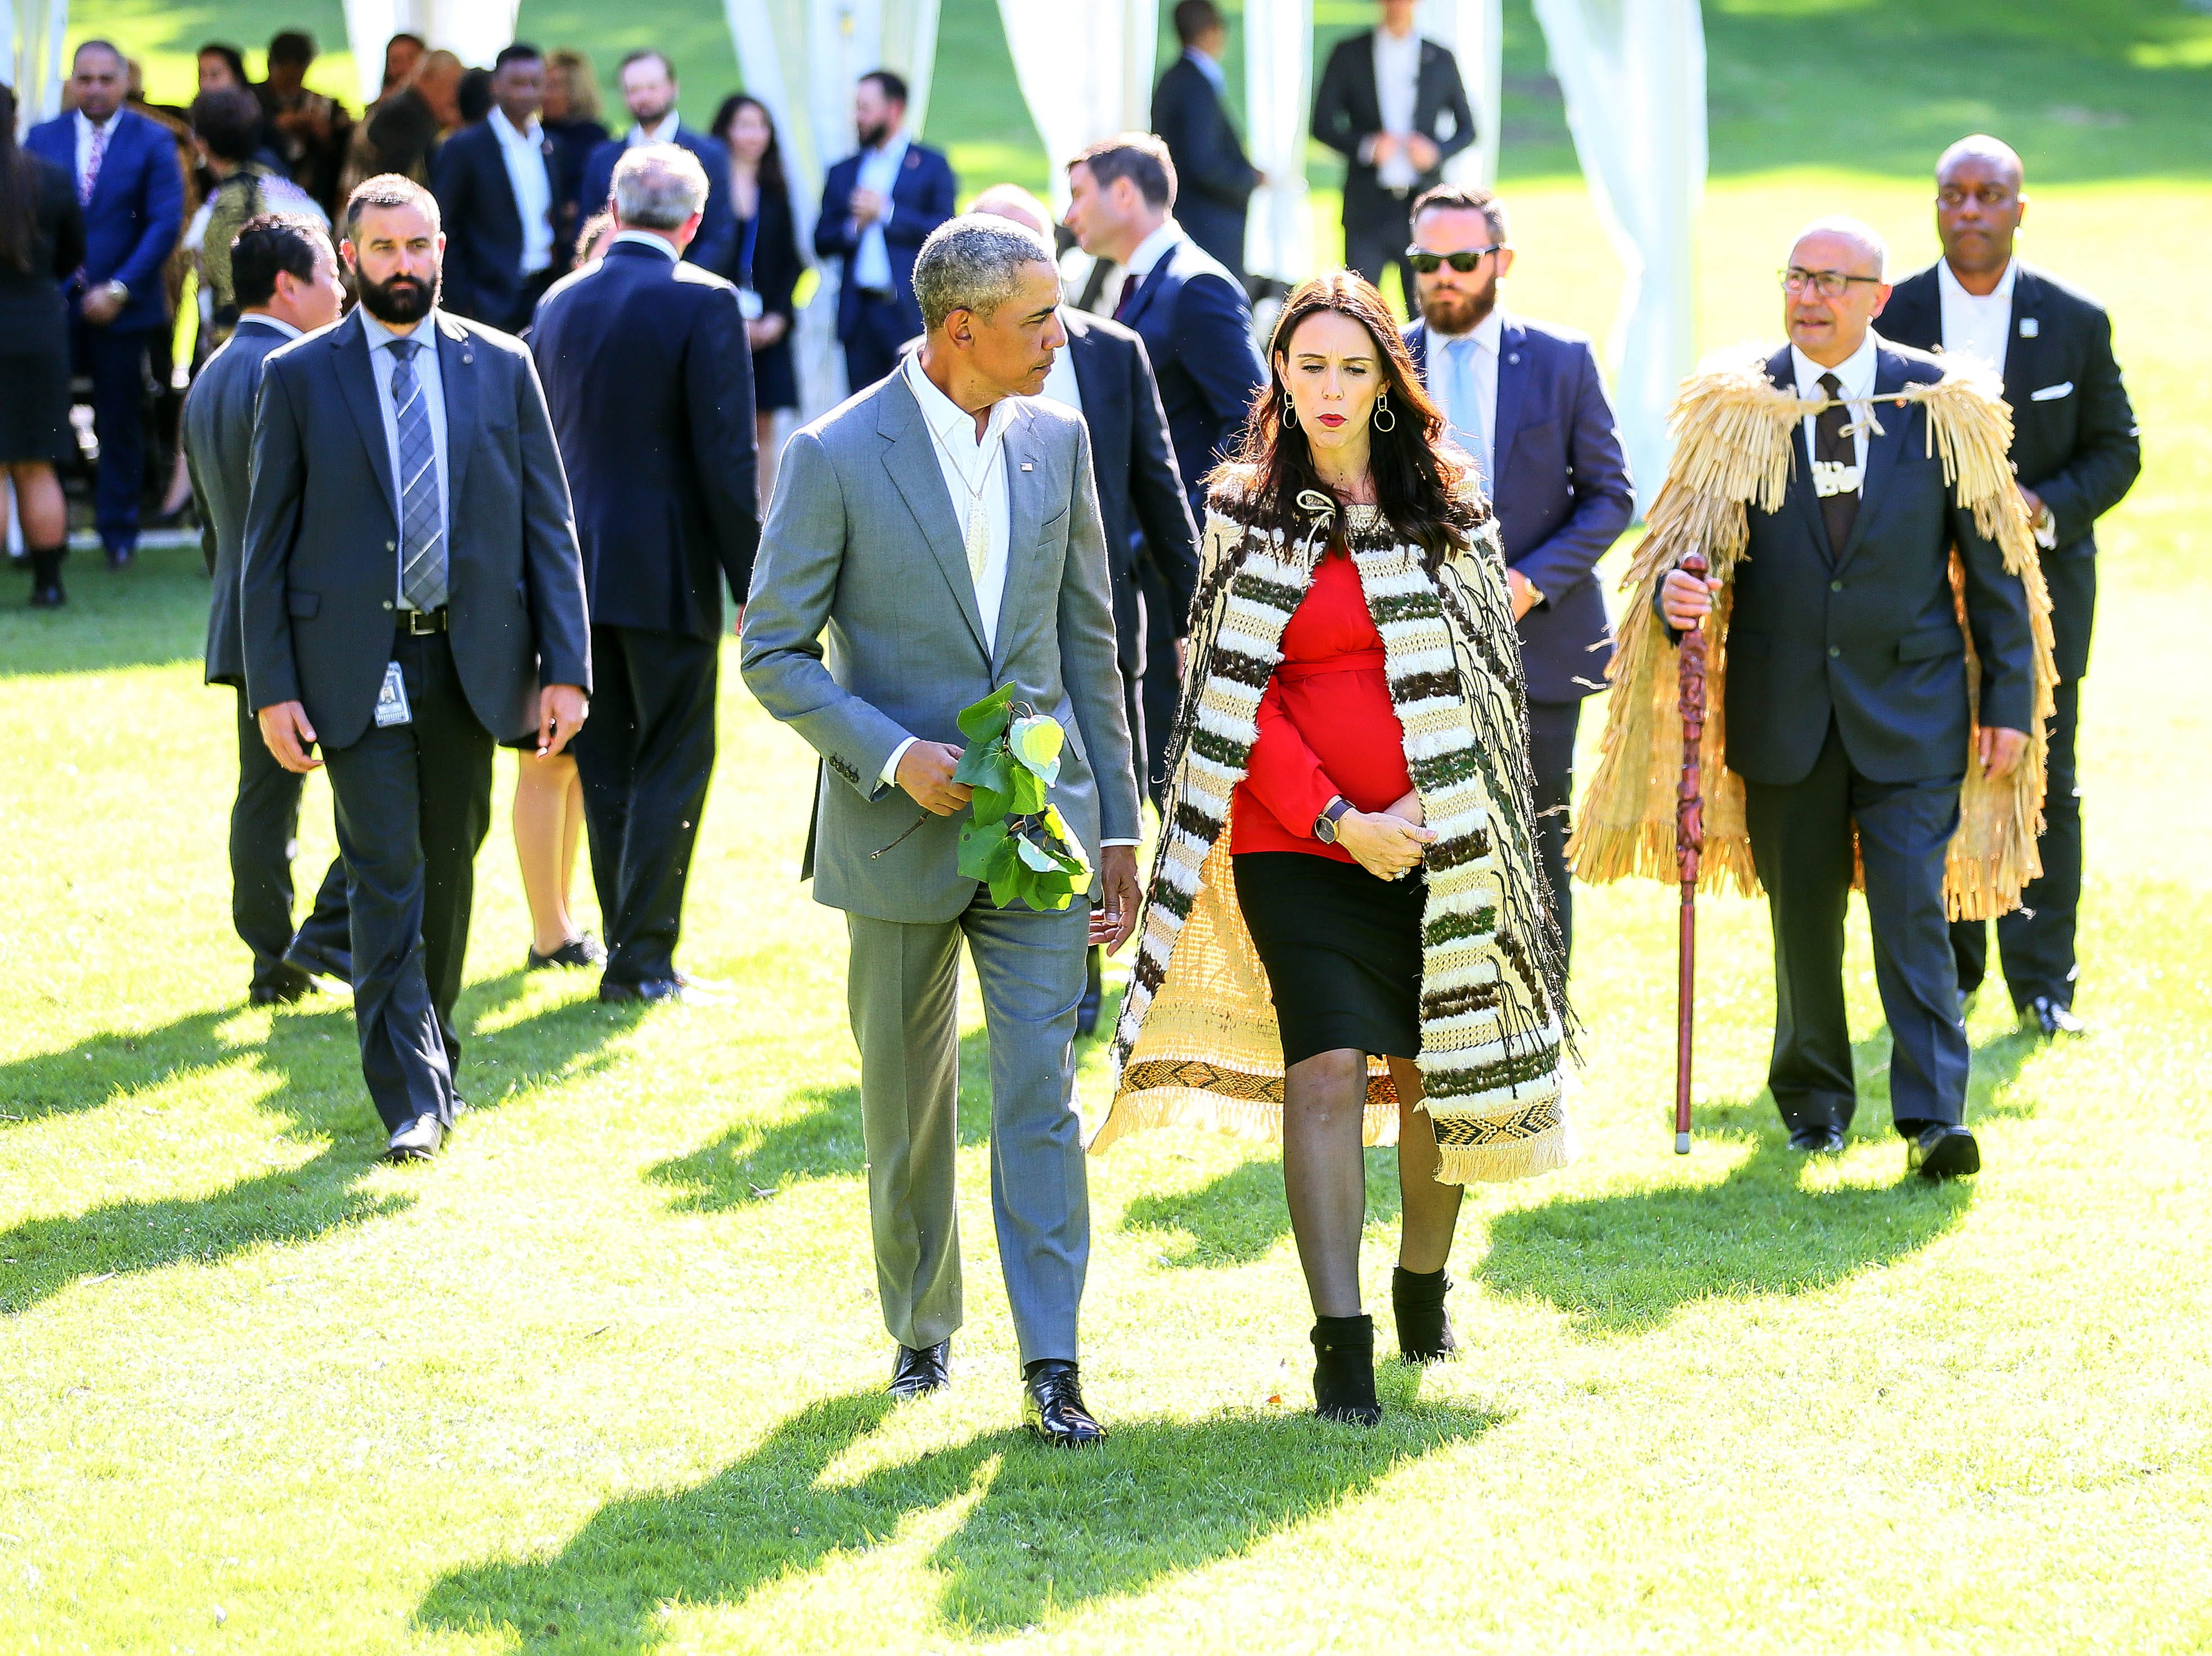 Barack Obama attends a powhiri with New Zealand Prime Minister Jacinda Ardern at Government House on March 22, 2018 in Auckland, New Zealand. It is the former US president's first visit to New Zealand, where he will be giving a a series of talks. Obama will also meet New Zealand prime minister Jacinda Ardern and former PM John Key during his visit.